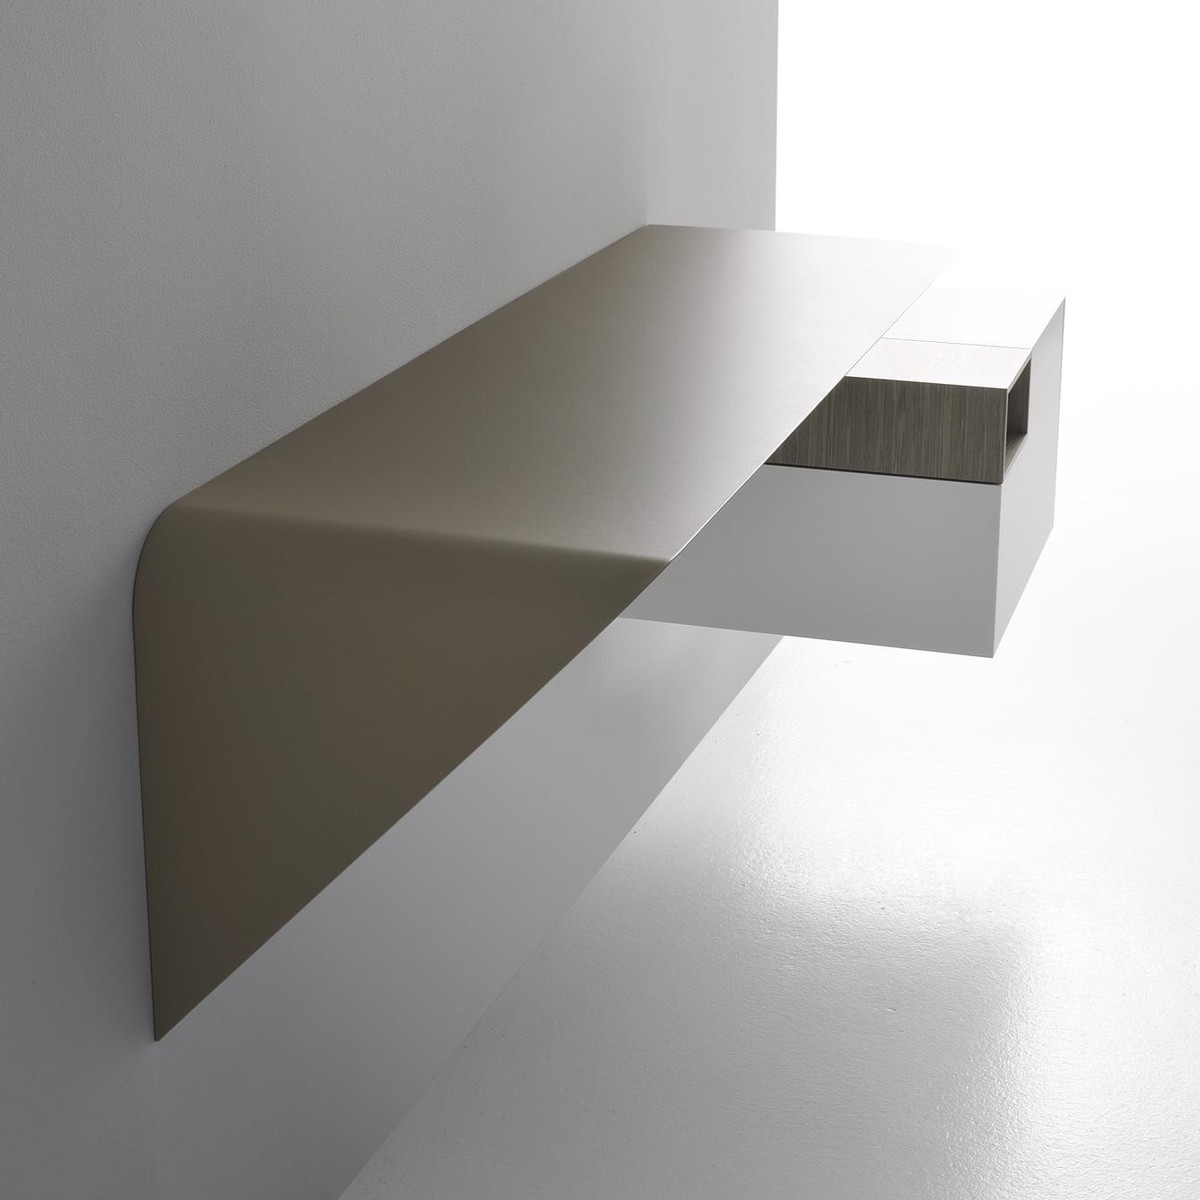 mamba light wall shelf mdf italia. Black Bedroom Furniture Sets. Home Design Ideas